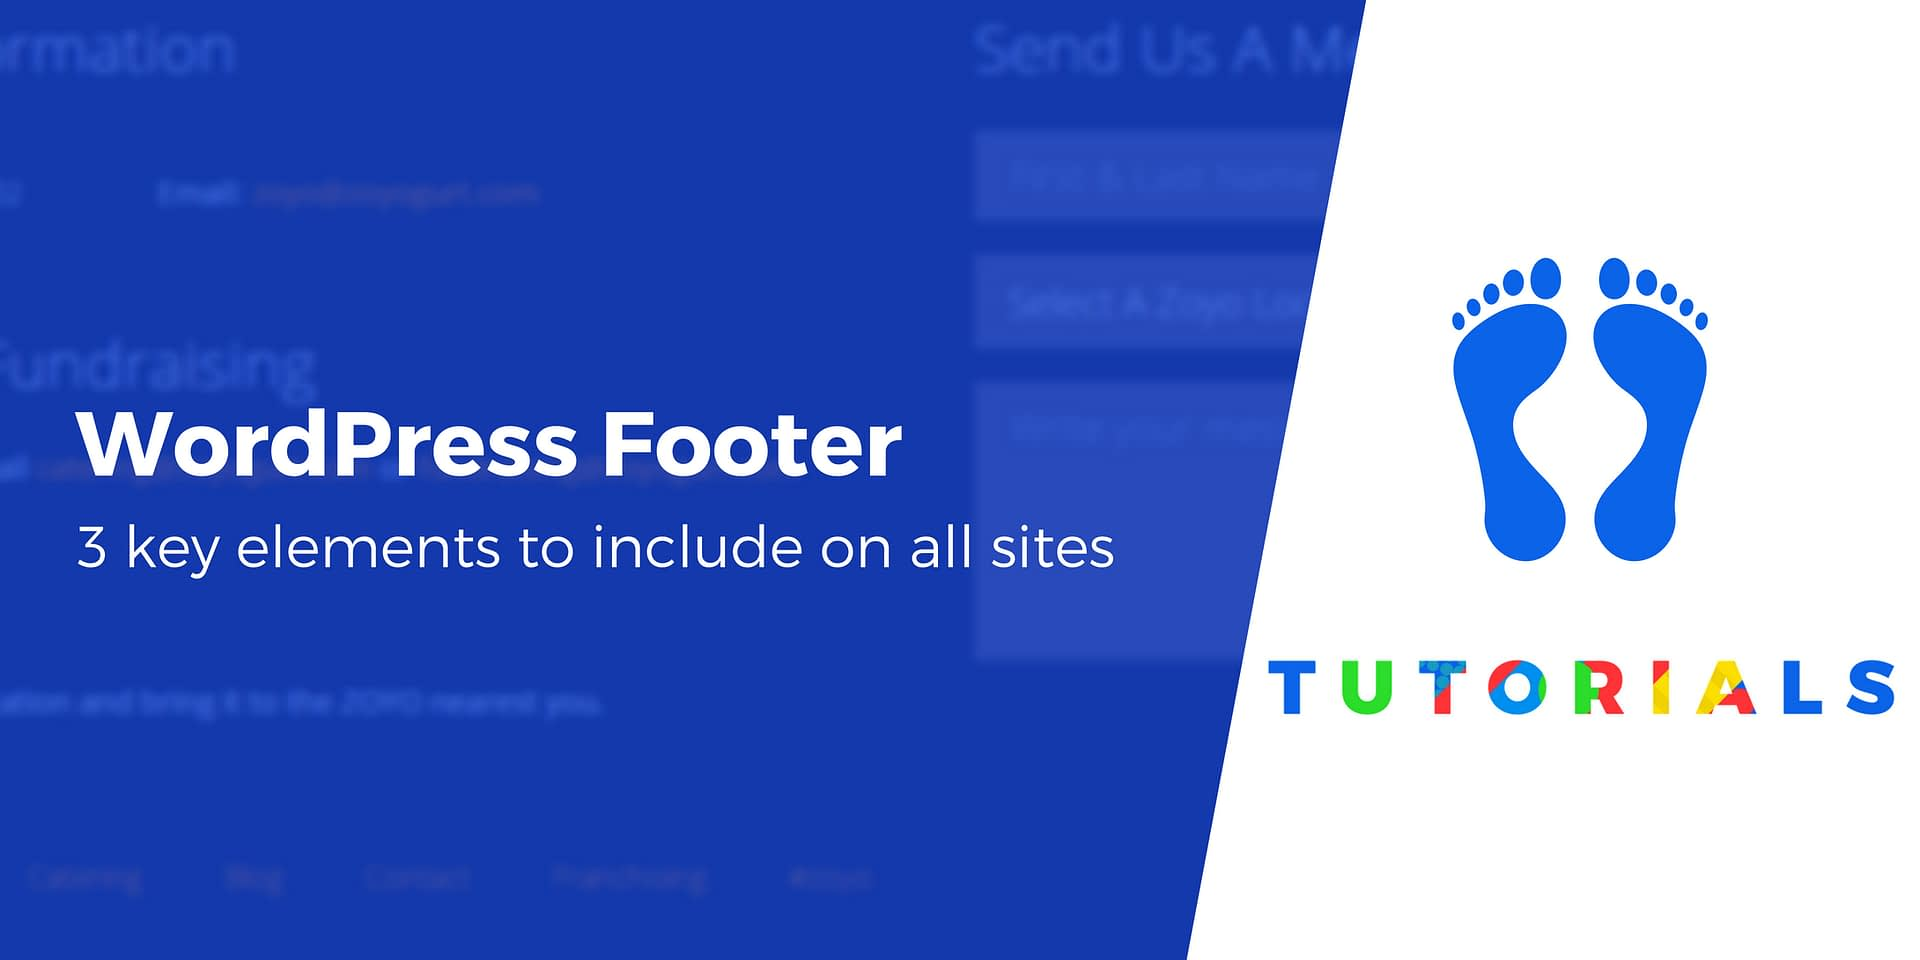 WordPress Footer: 3 Elements That All Websites Should